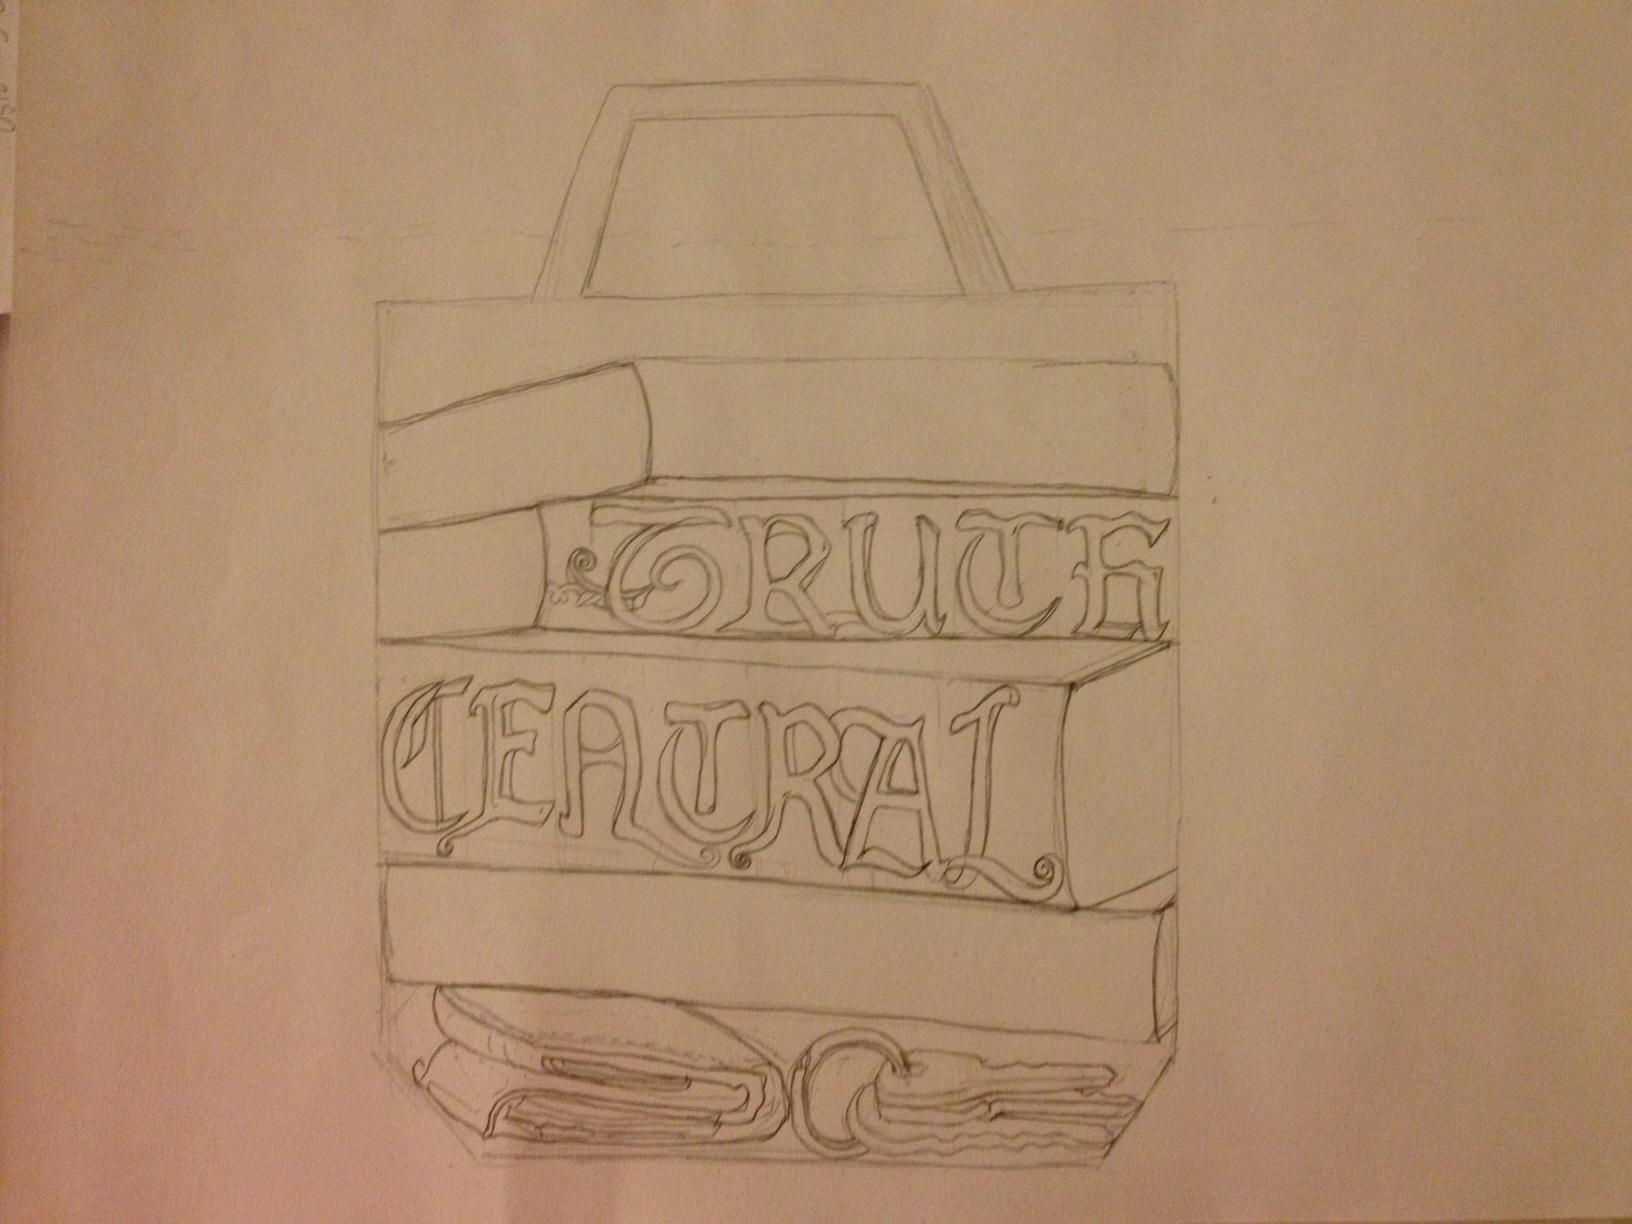 Truth Central logo - image 6 - student project